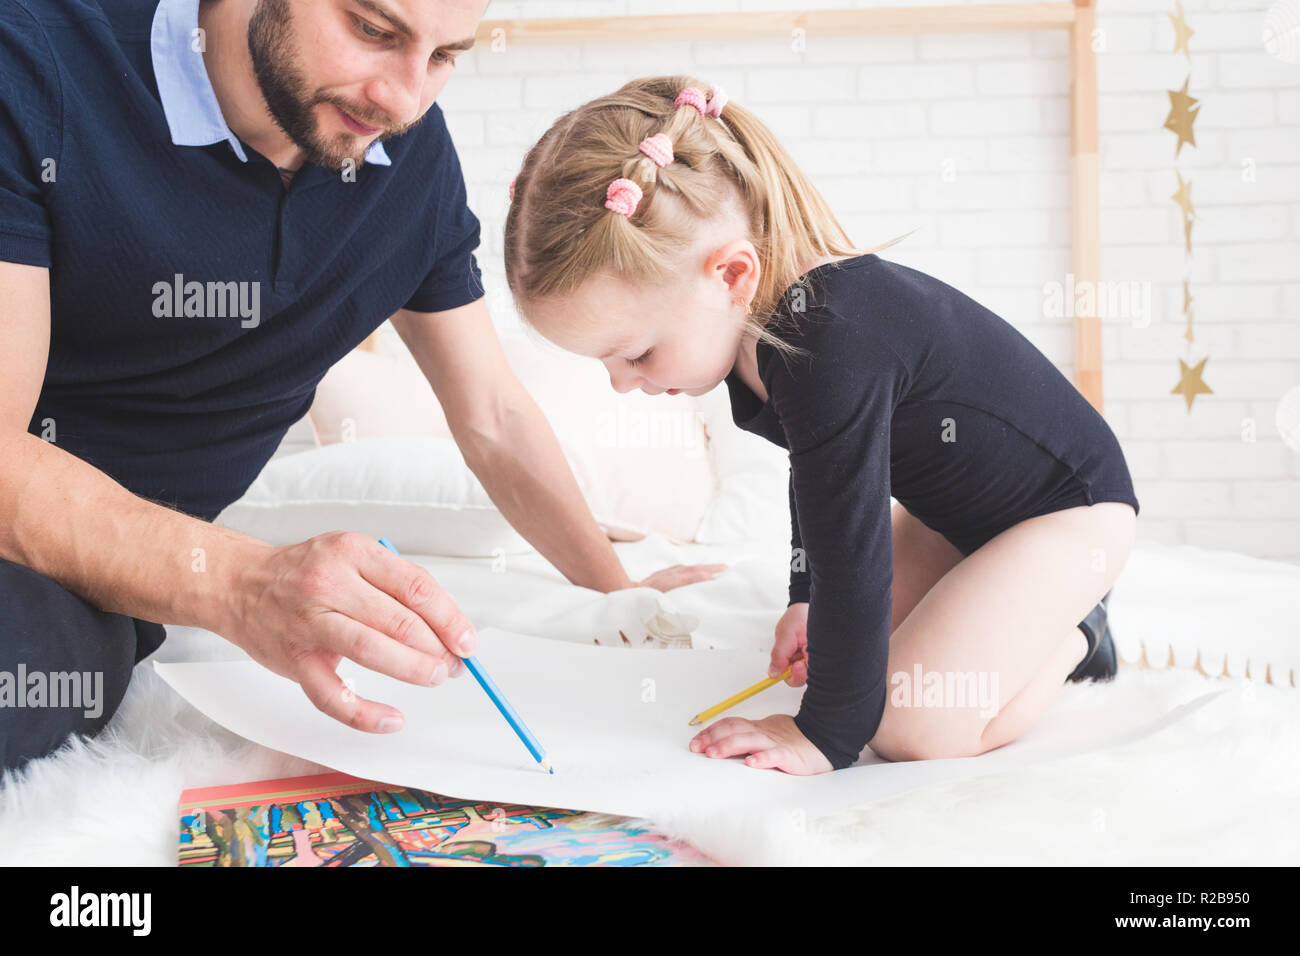 A young father and his daughter lie on the floor and draw with colored pencils. - Stock Image